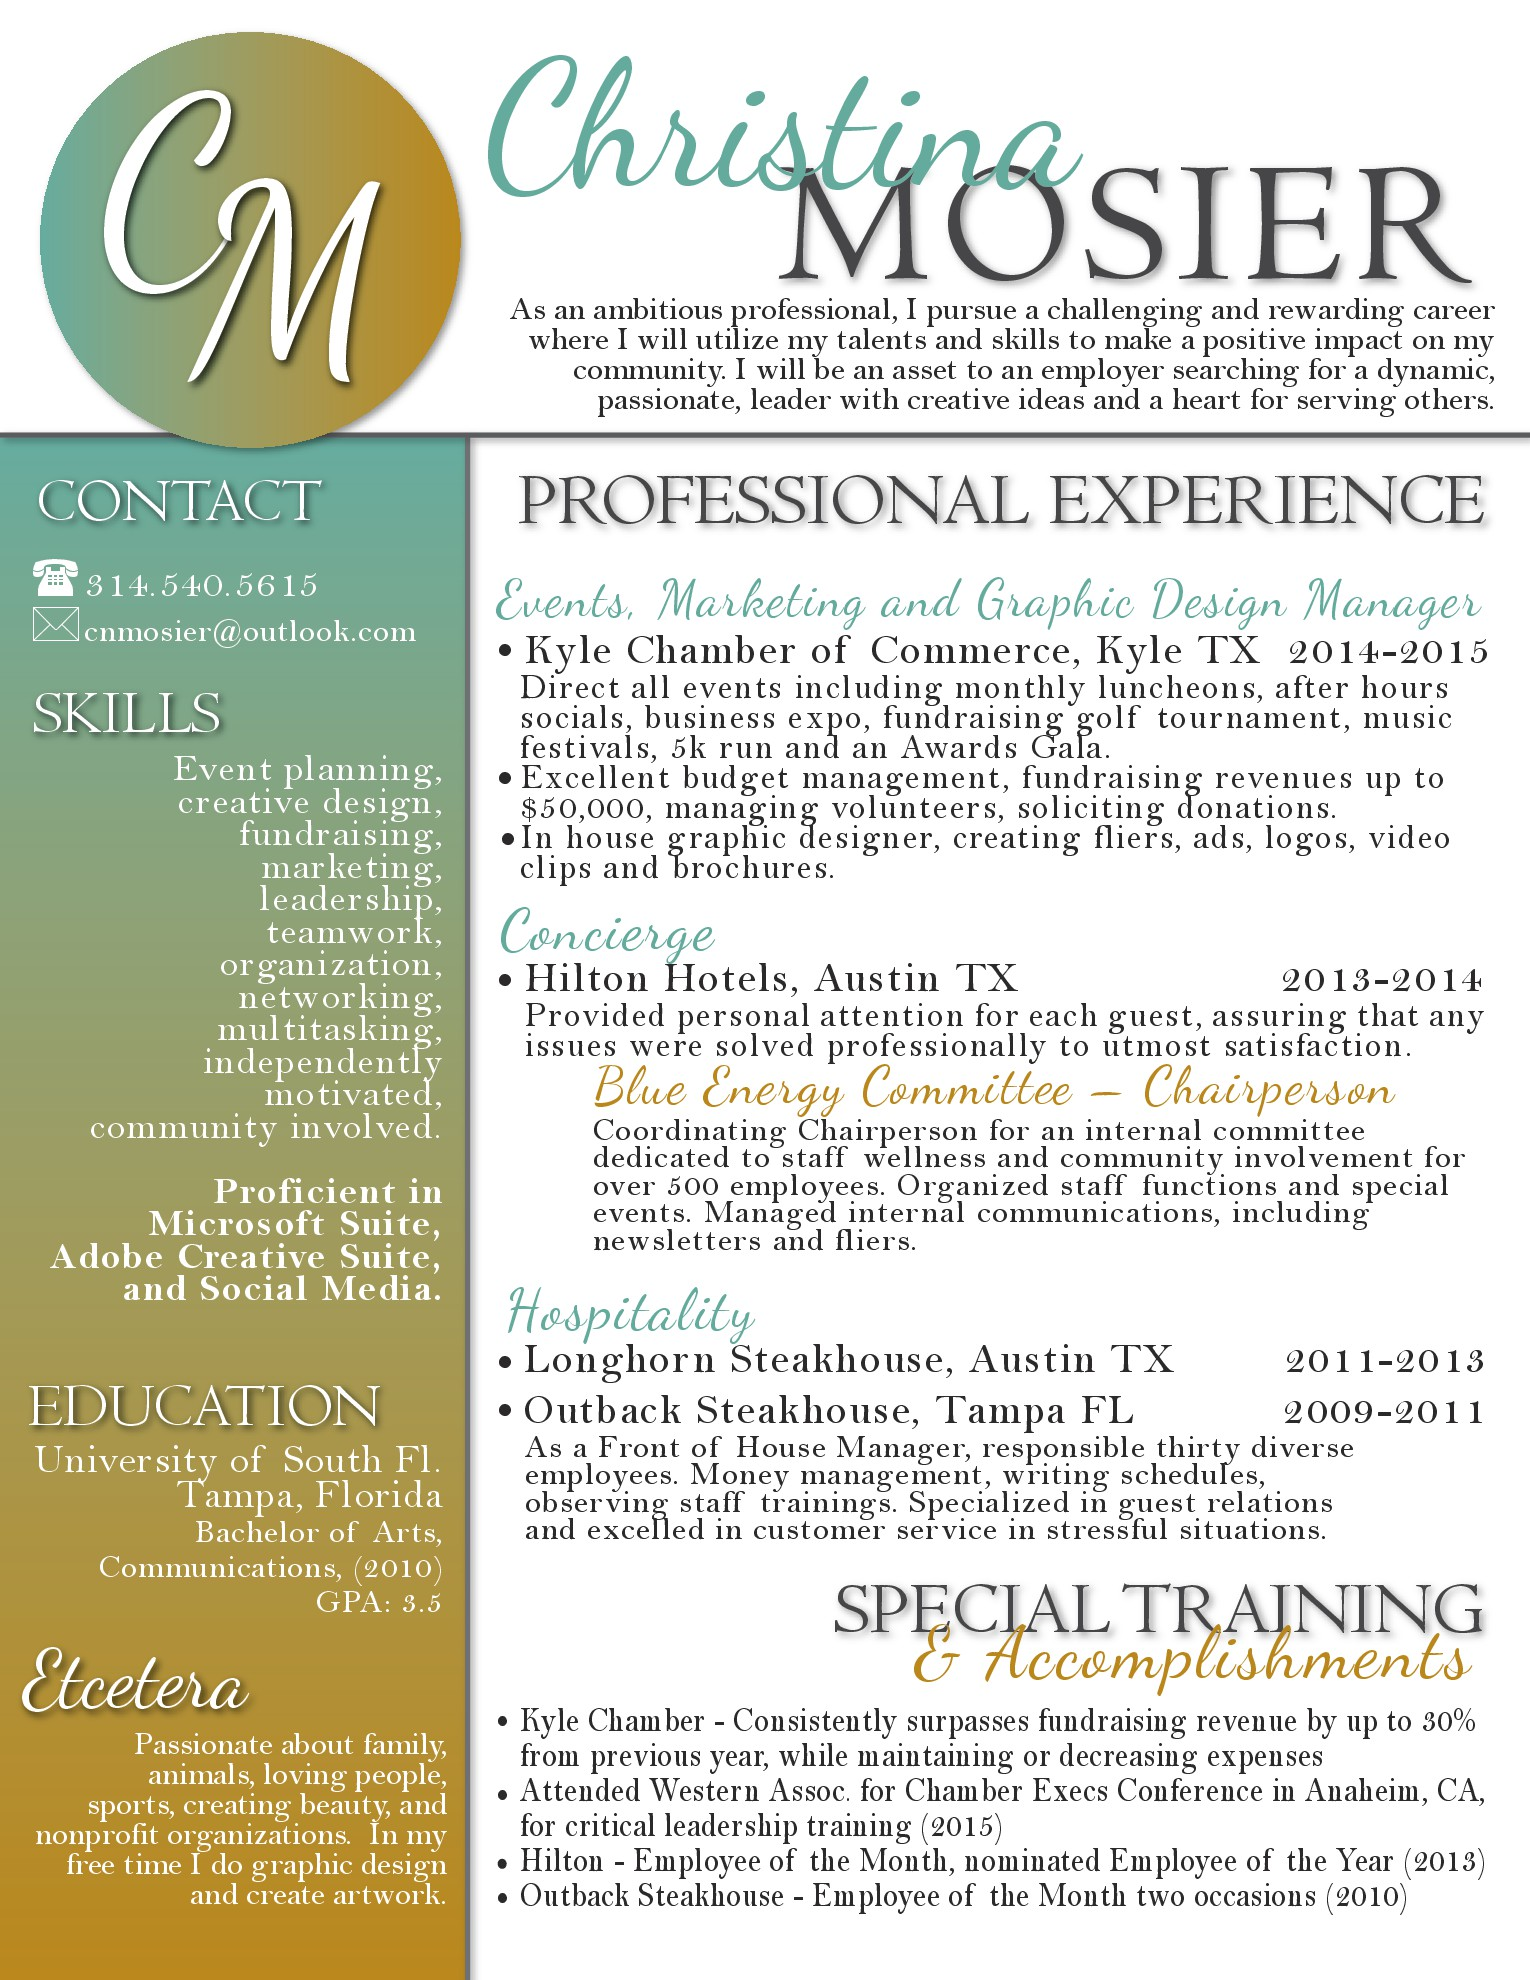 Resume Conference Coordinator Resume events coordinator resume termination template form cv christina mosier cv